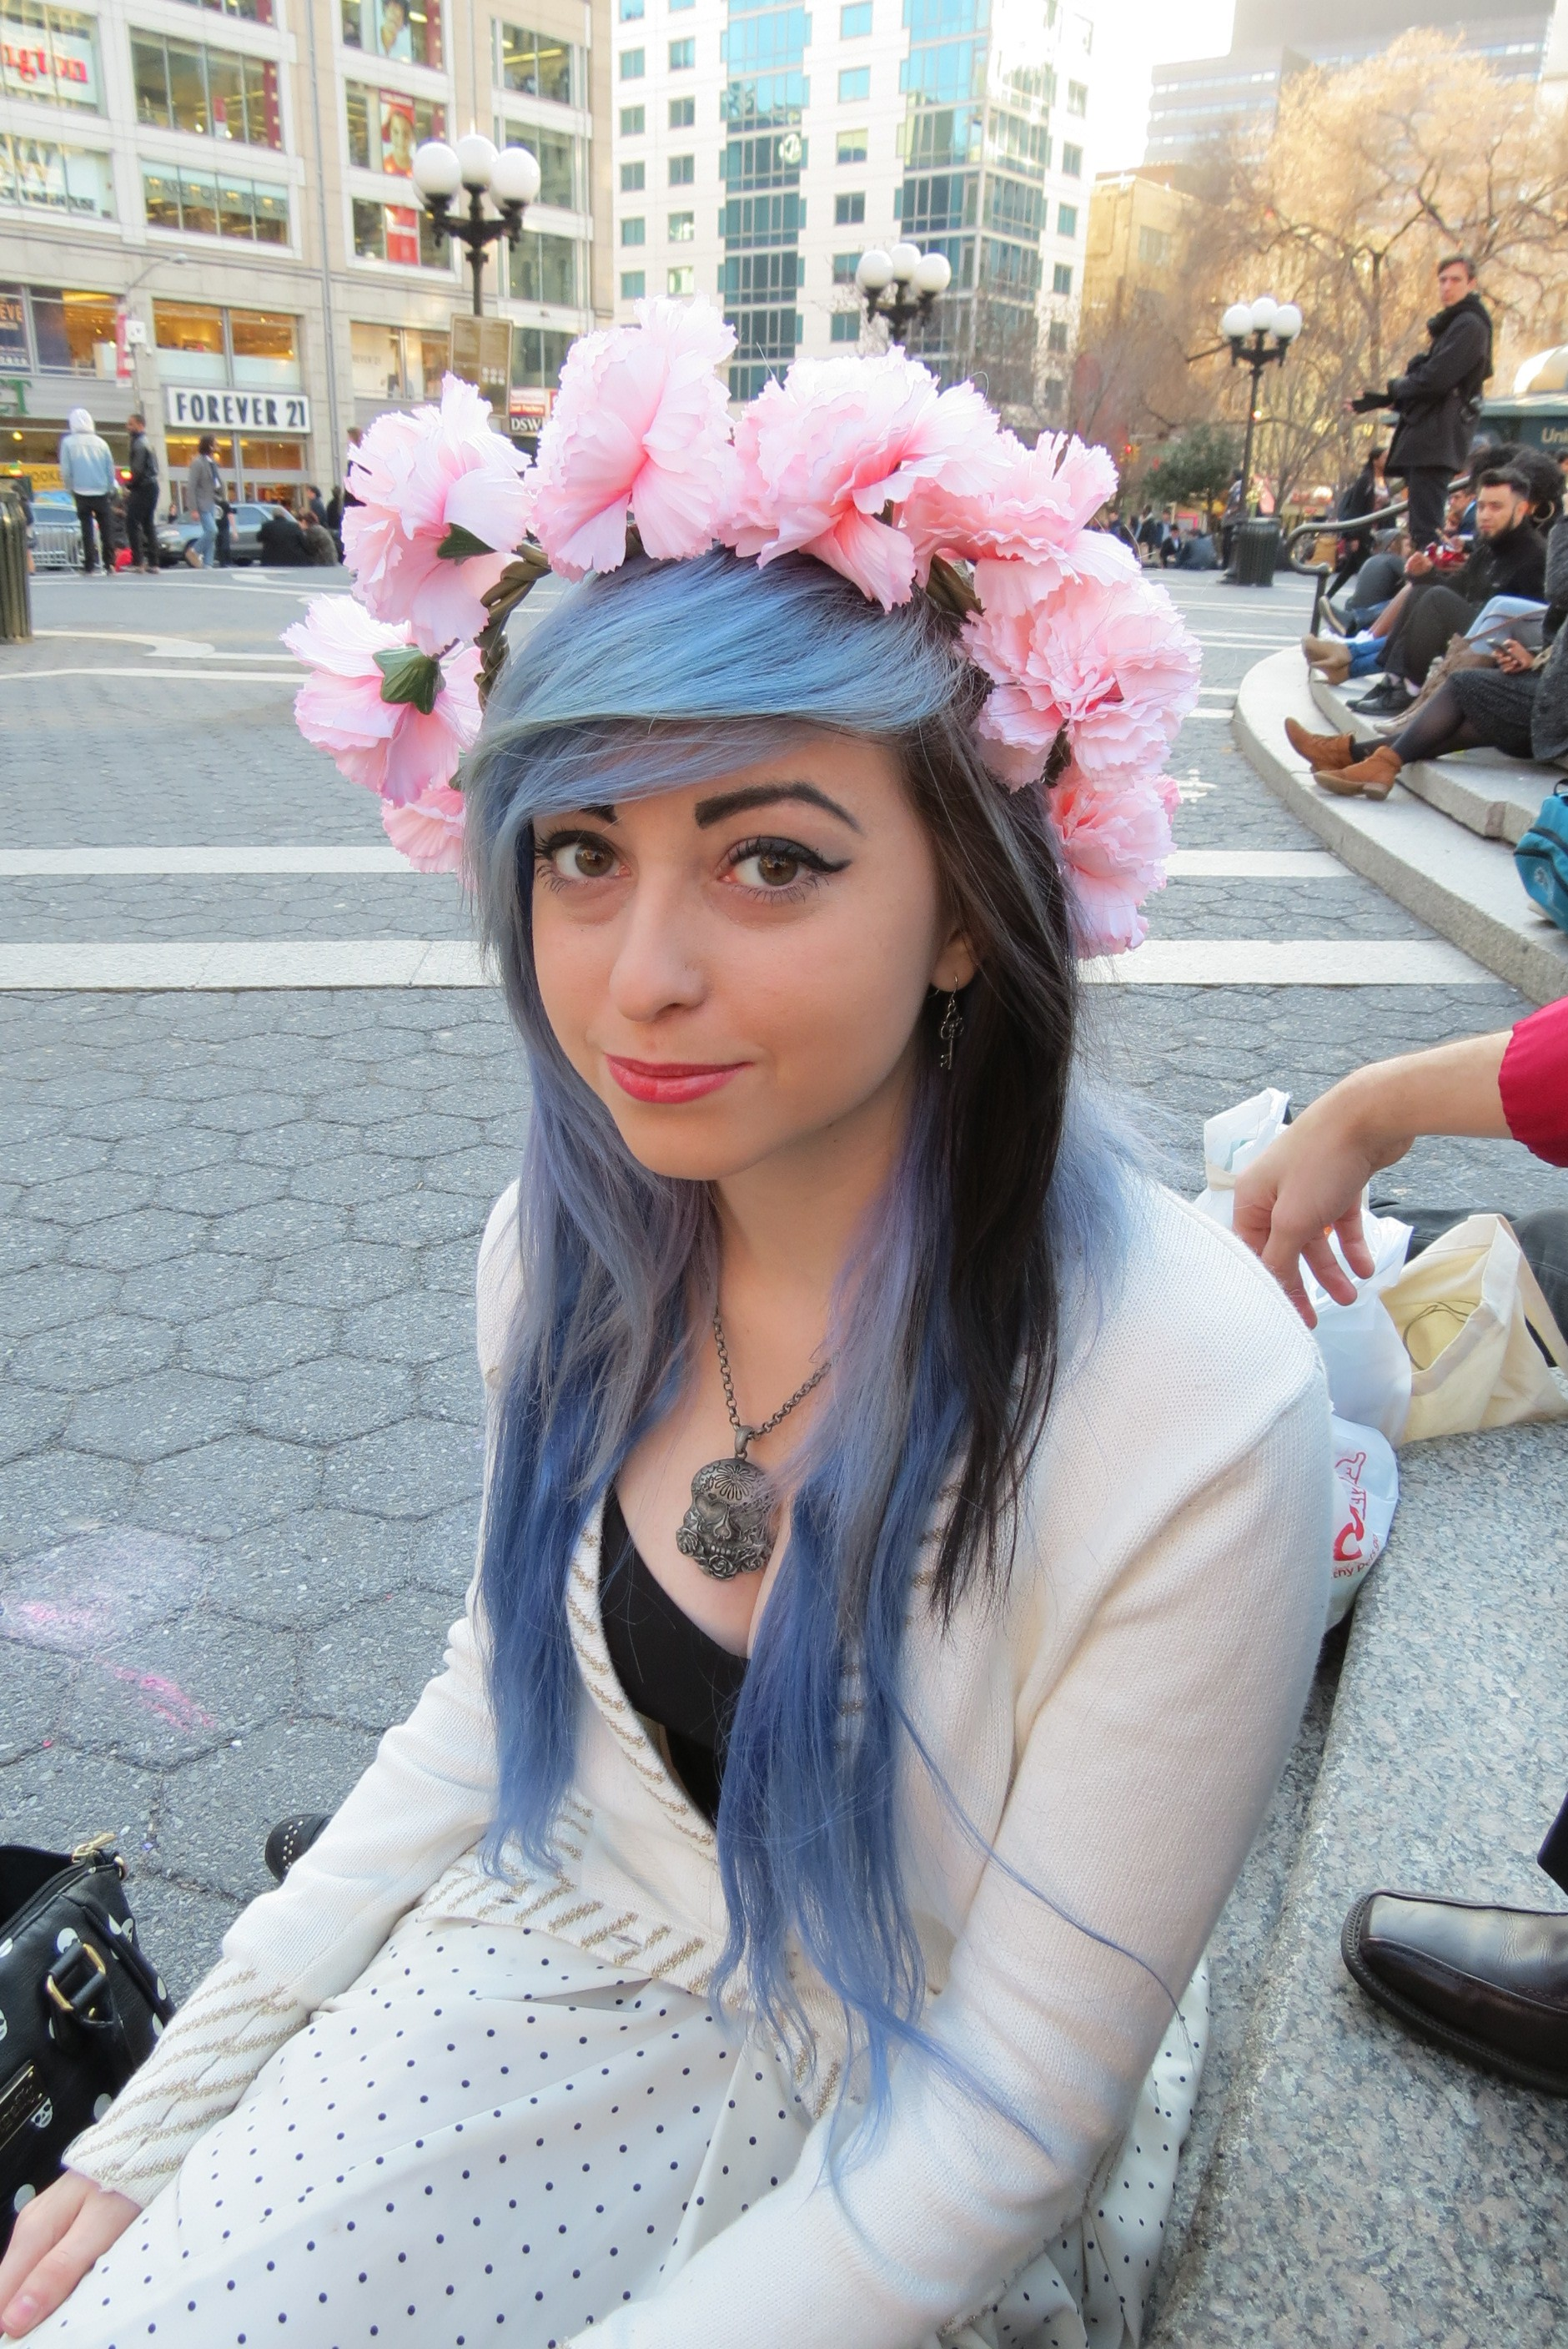 Black & blue haired girl with crown of pink flowers